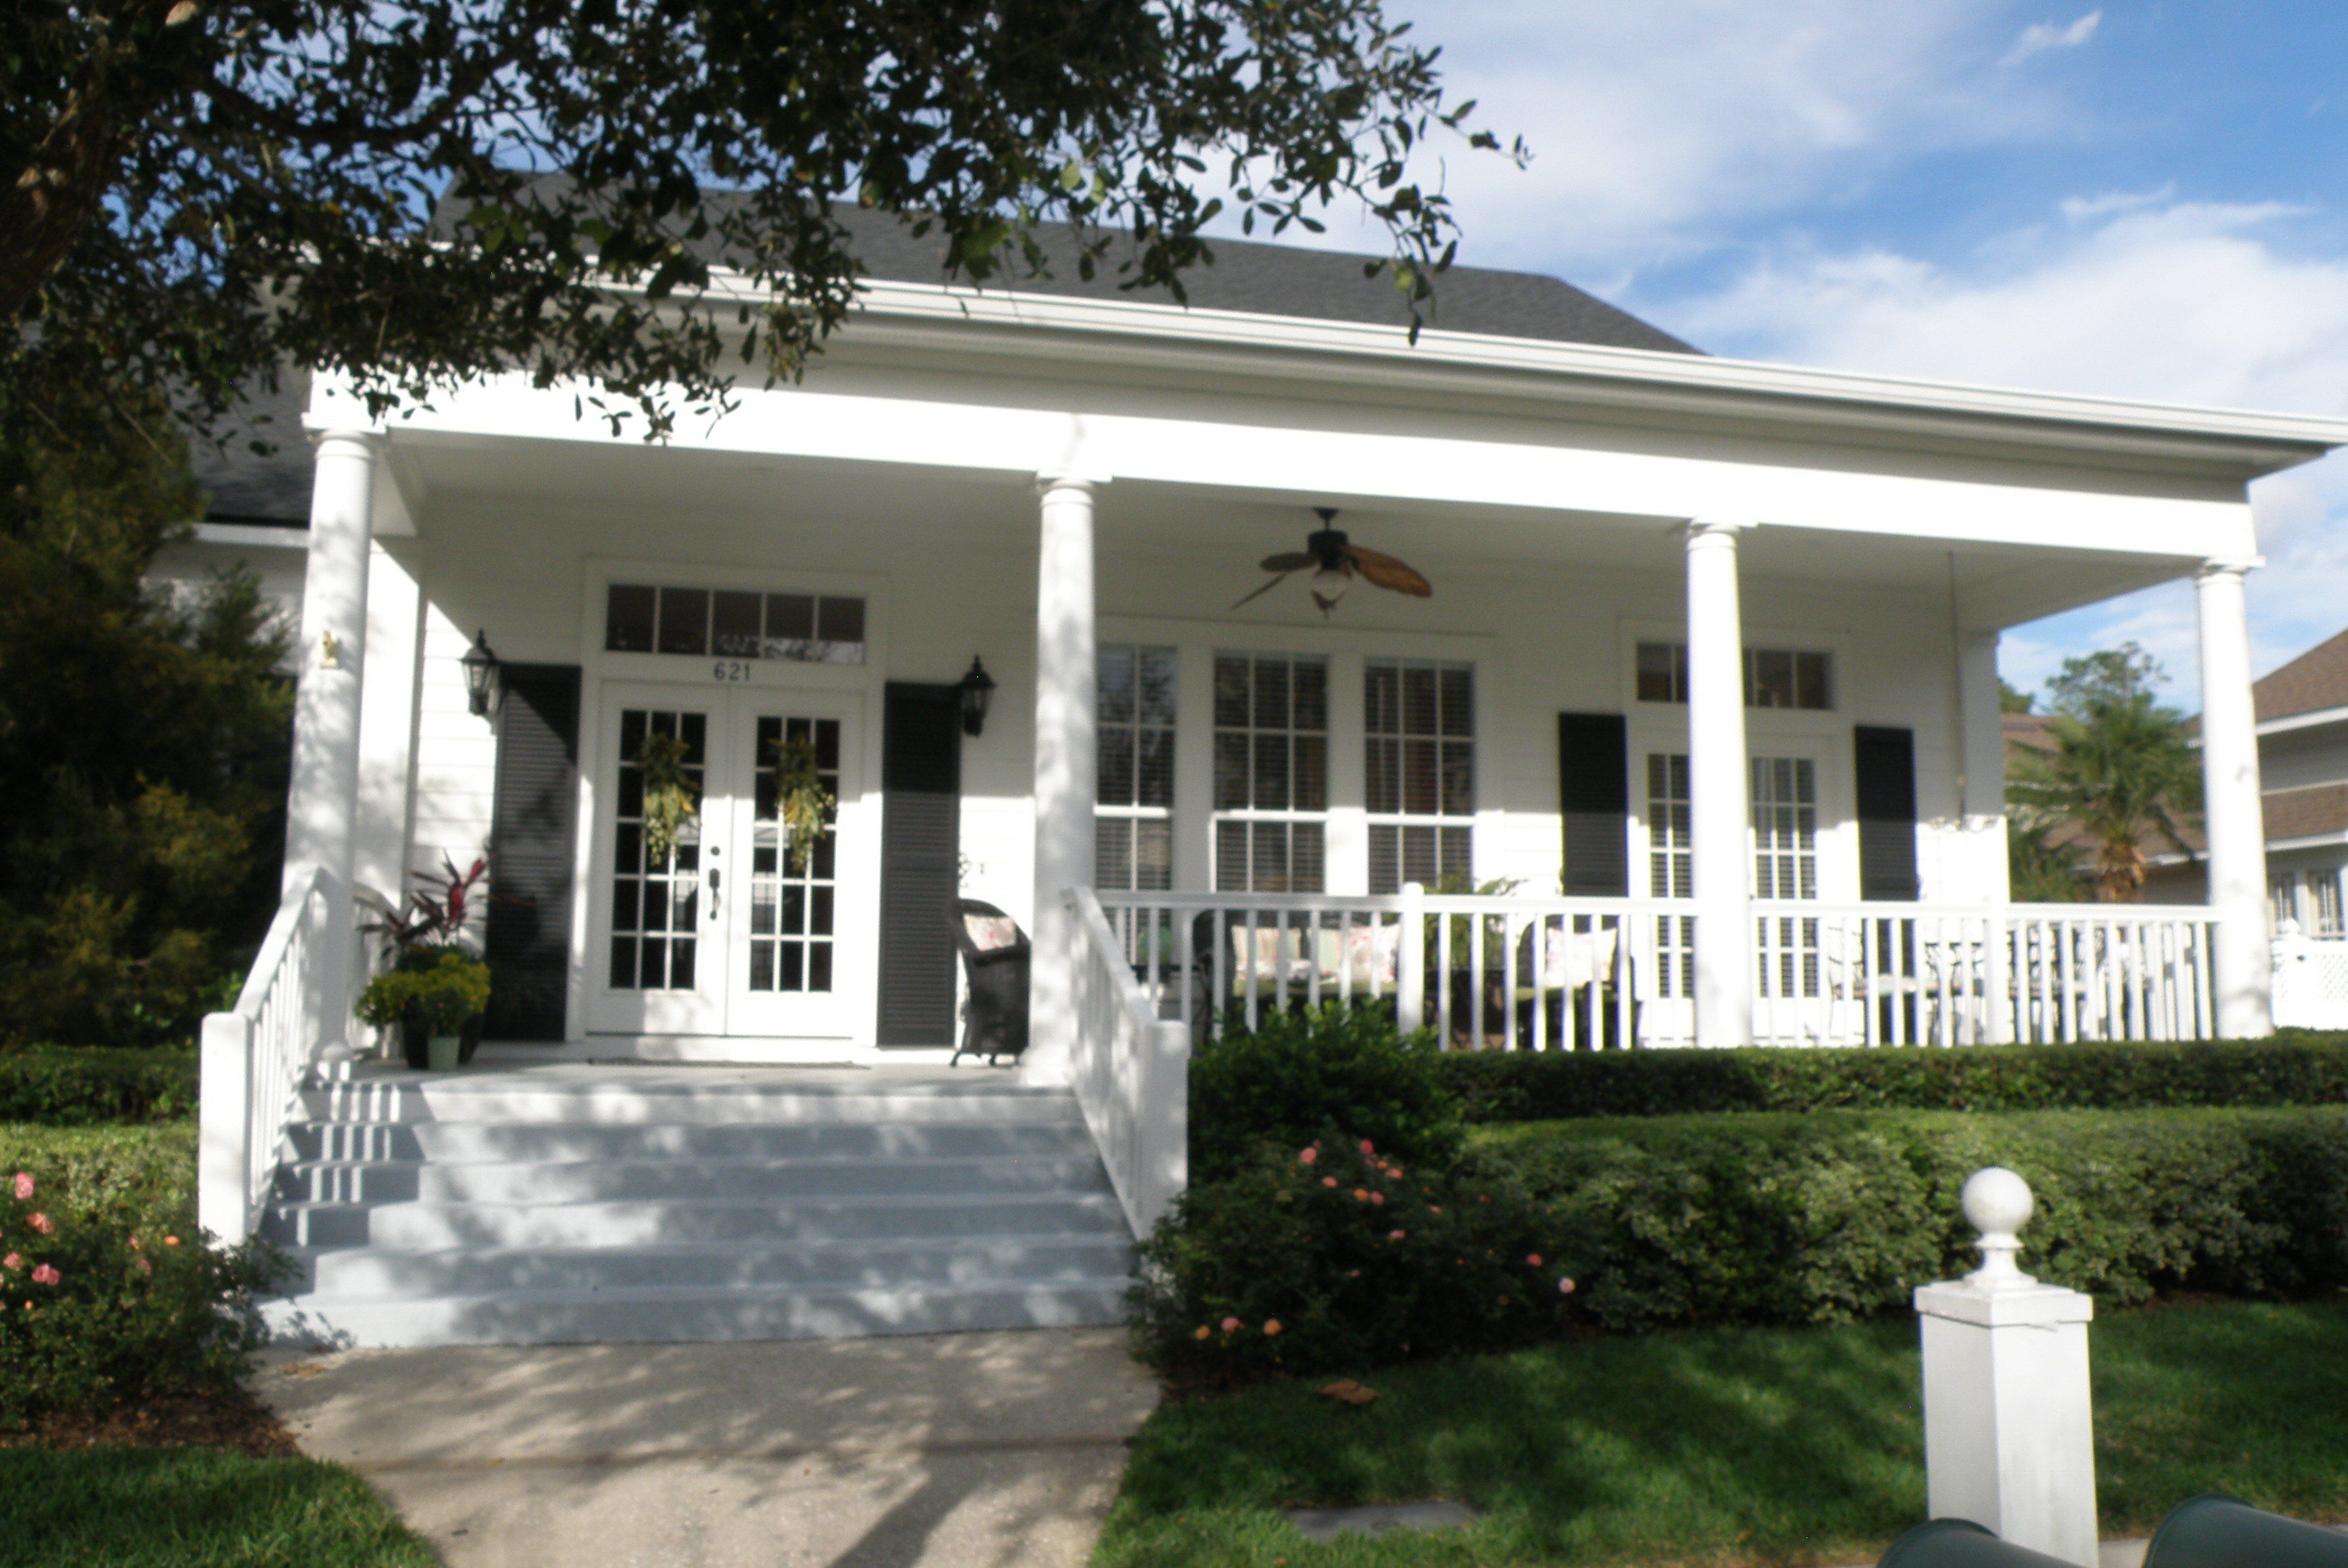 lefthand entrance to bungalow with two front doors, low roof, and front porch the width of the front